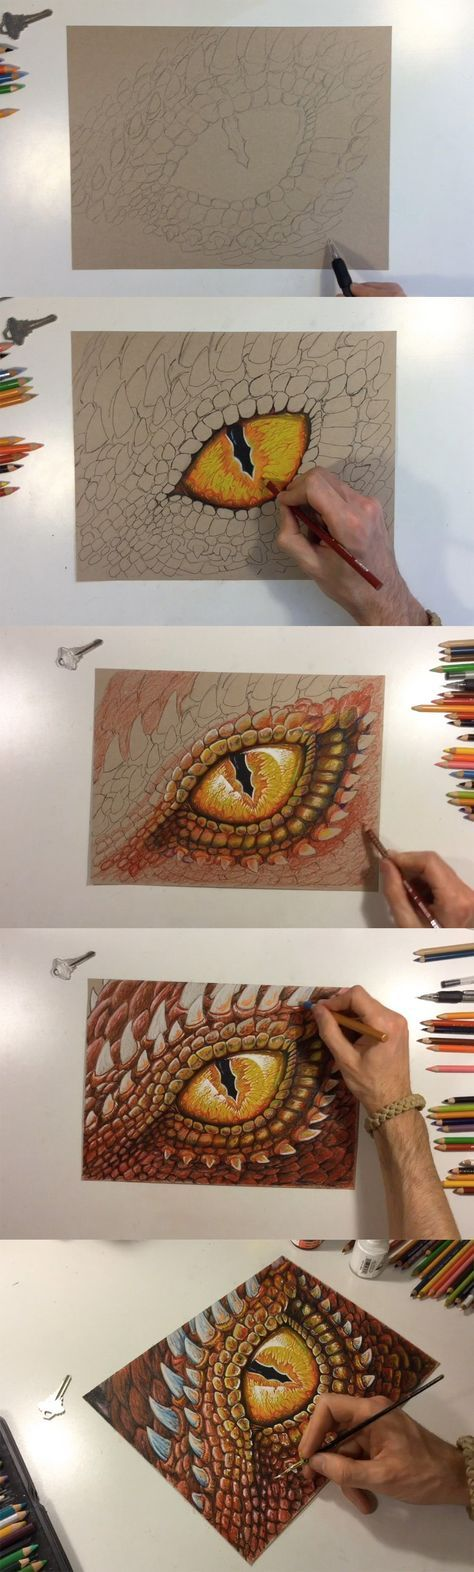 Fantasy art time-lapse drawing of a fire dragon eye. Colored pencil artwork by Aaron Spong #realisticeye